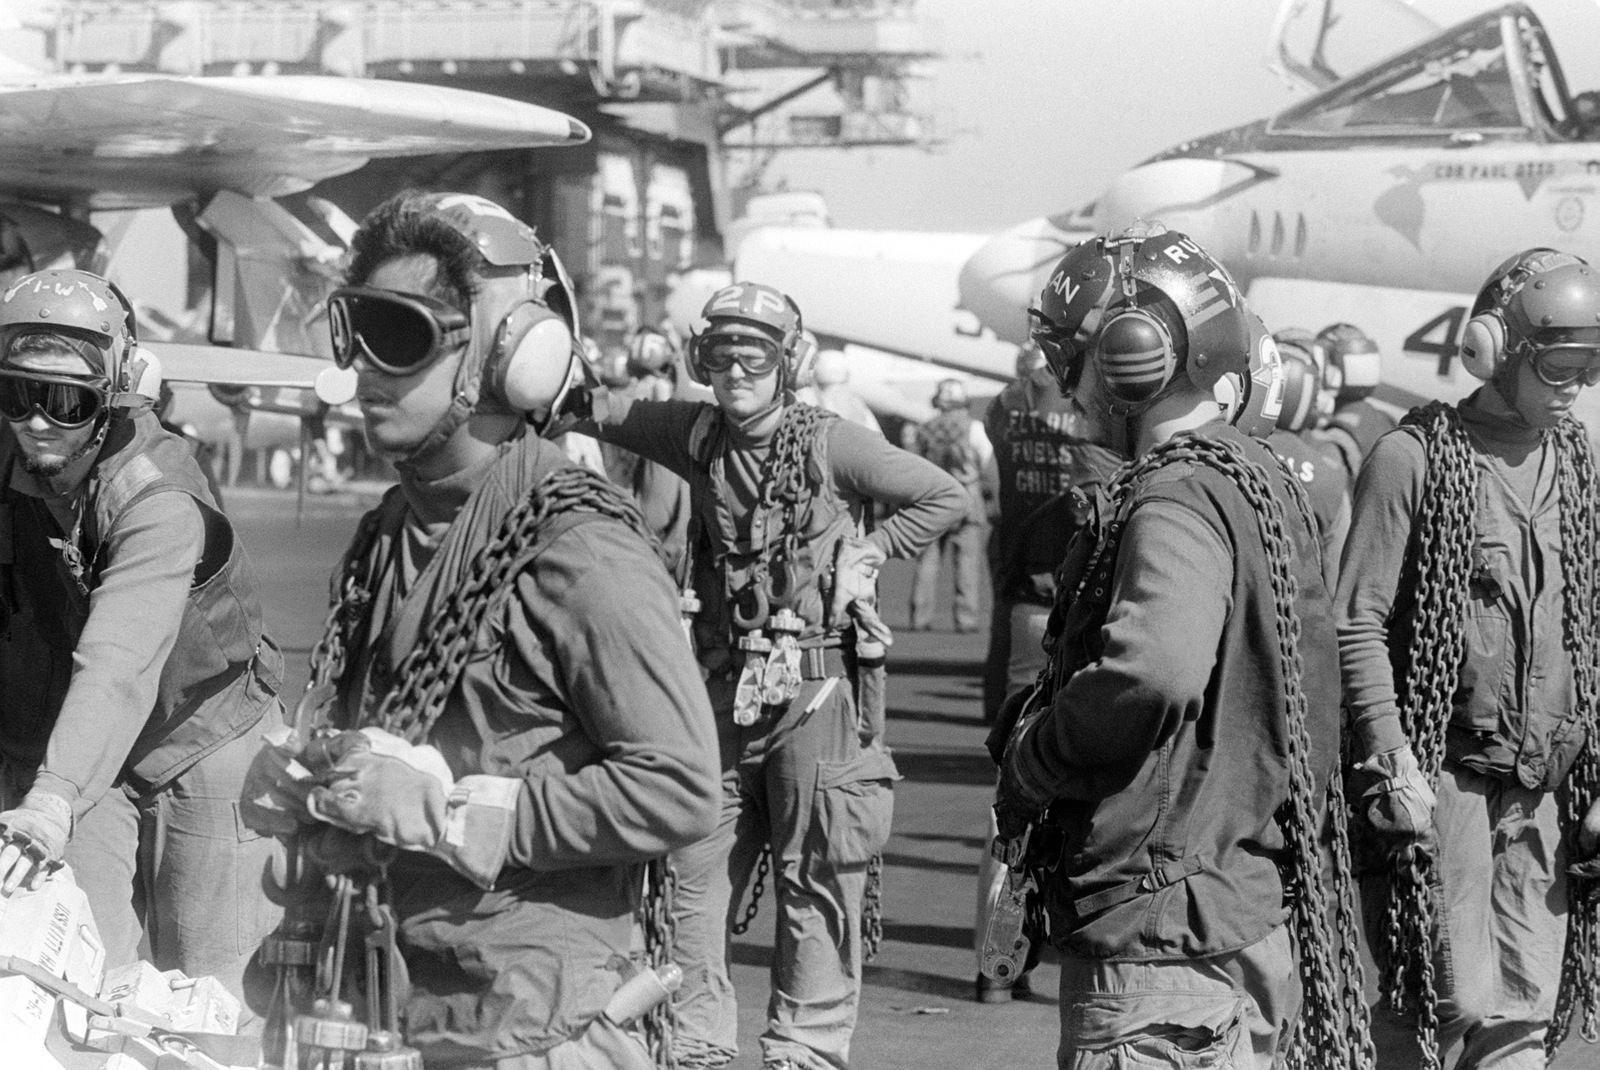 Flight deck crewmen stand by with tie down chains aboard the aircraft carrier USS KITTY HAWK (CV 63). The chains are used to secure aircraft in position on the flight deck